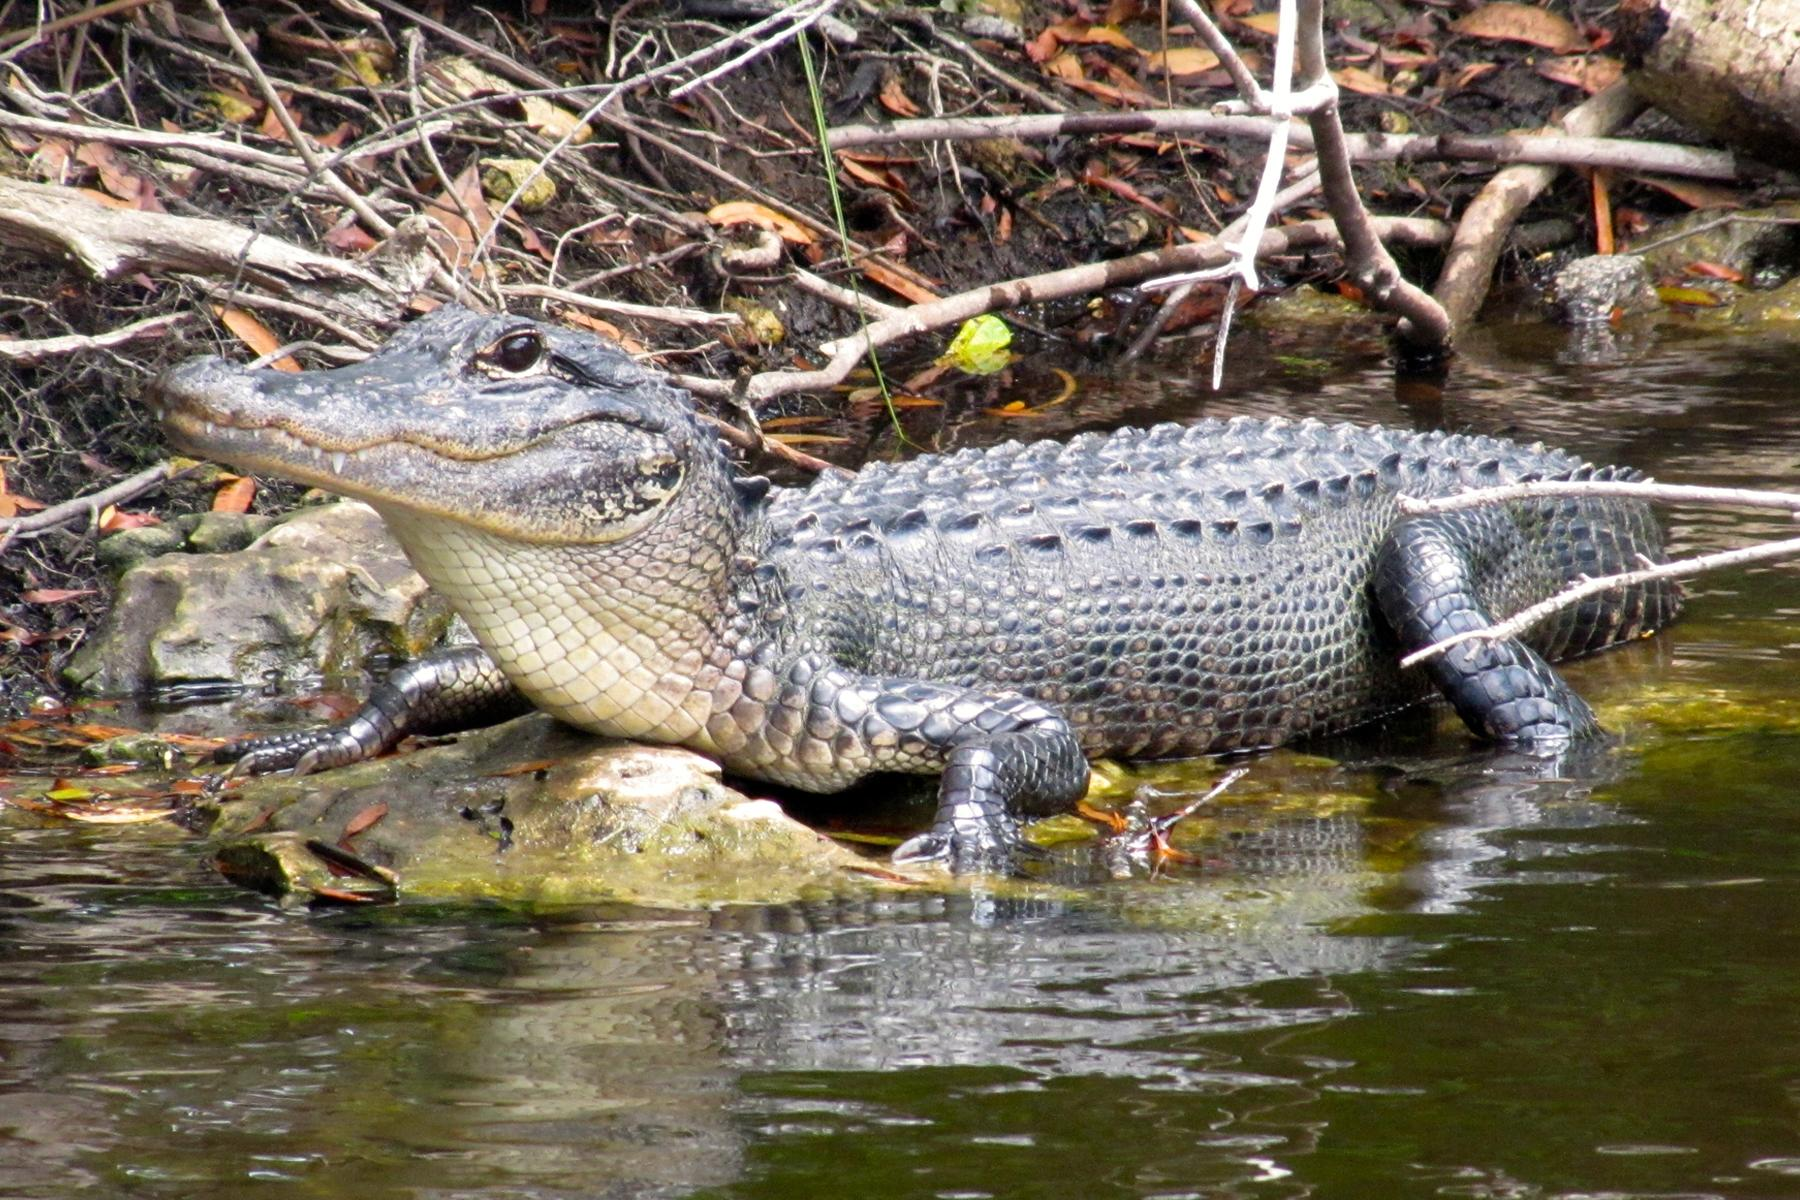 Alligators in Florida Are Climbing Fences and Swimming Through Streets